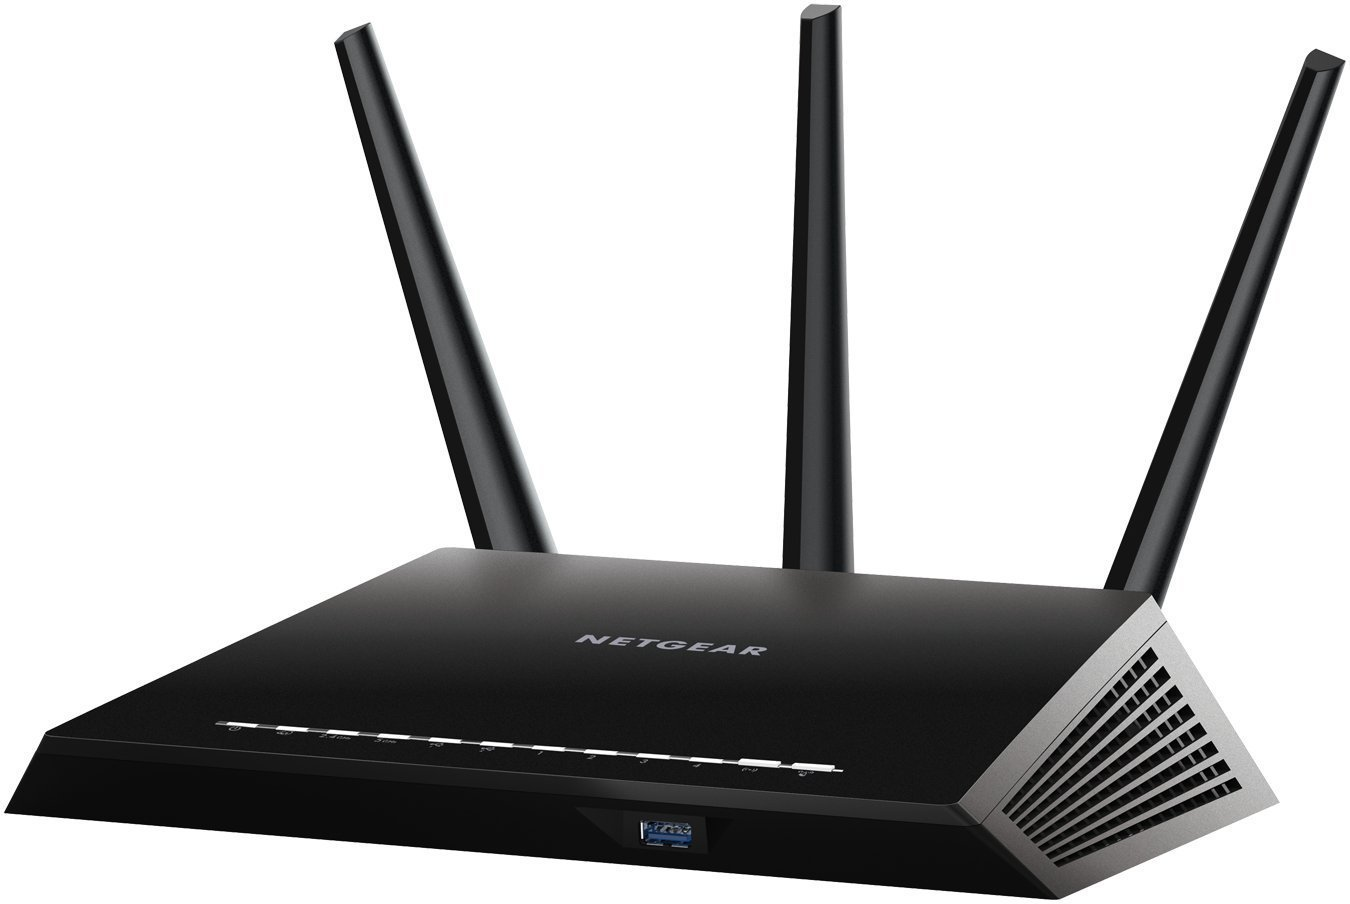 NETGEAR Nighthawk AC1900 Smart WiFi Router - Dual Band Gigabit (R6900-100NAS) (Renewed) by NETGEAR